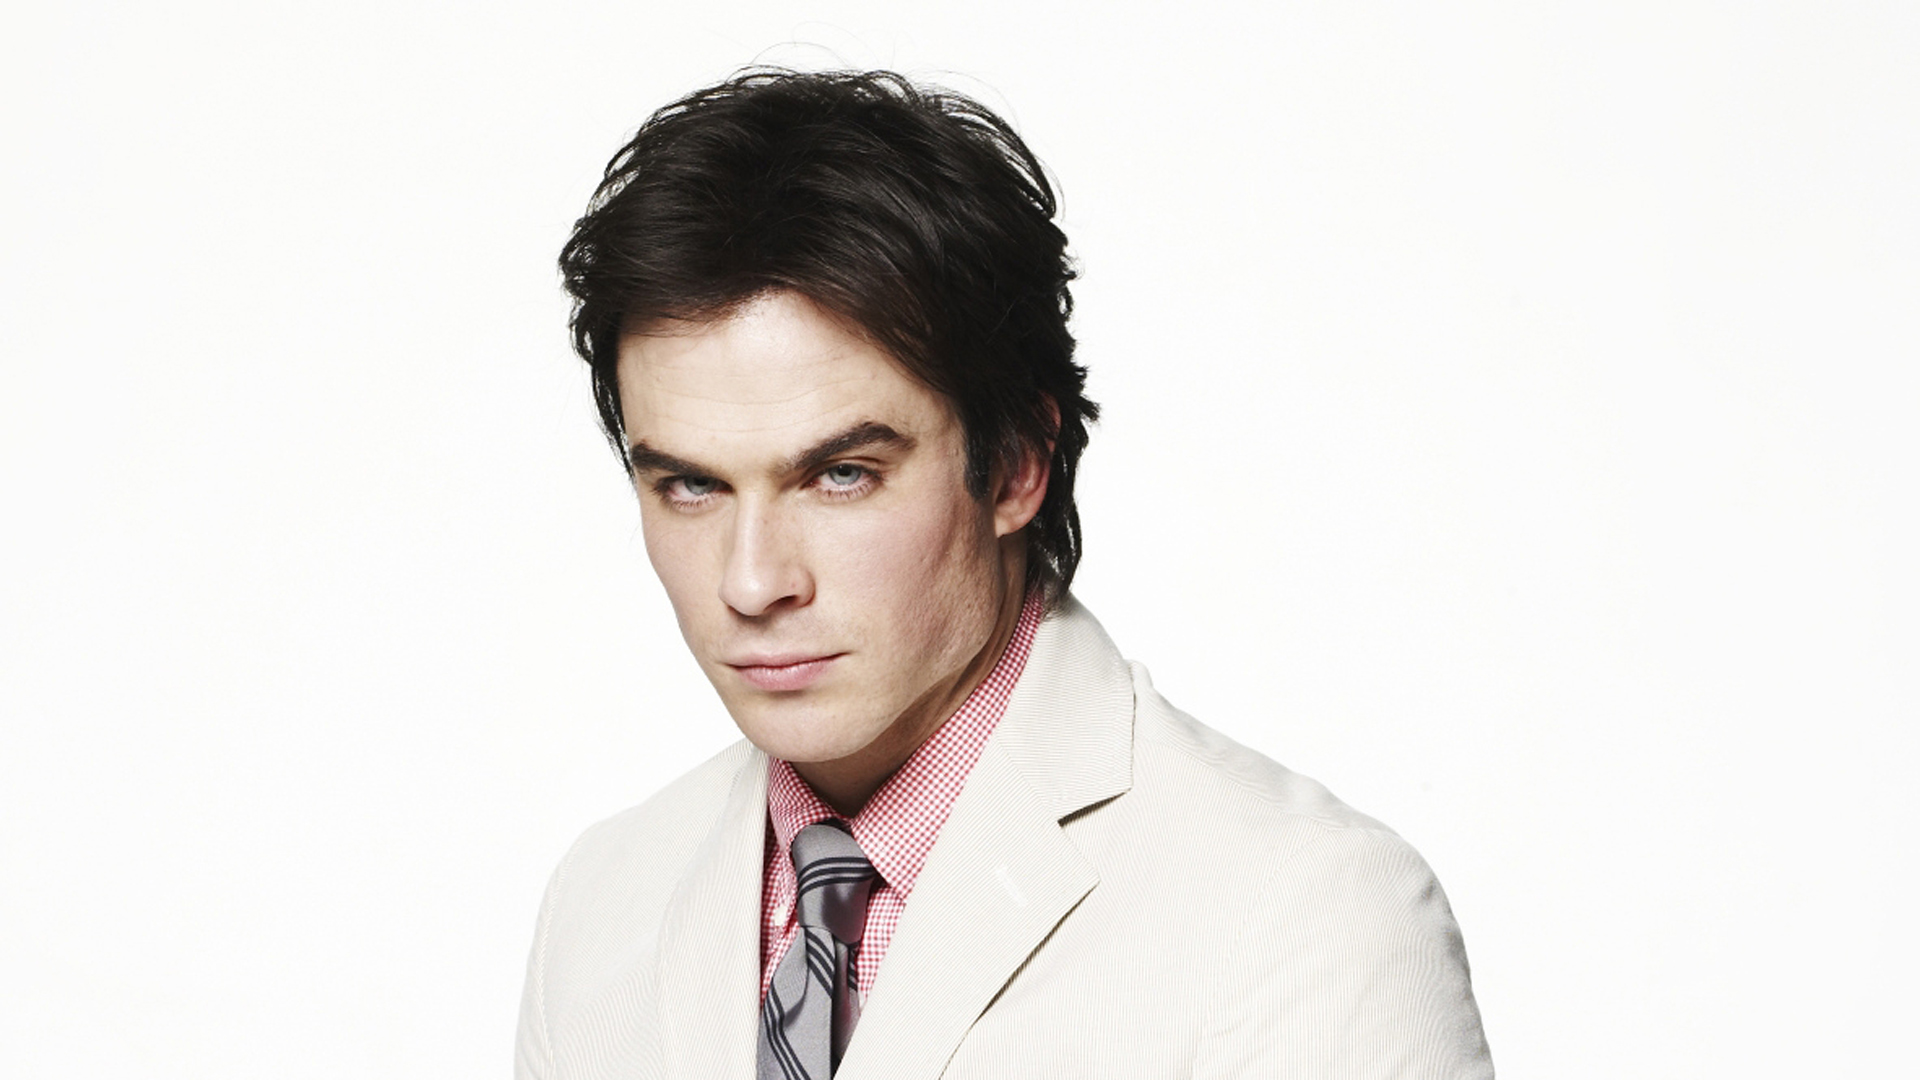 Ian-Somerhalder-Wallpapers-HD-32.jpg